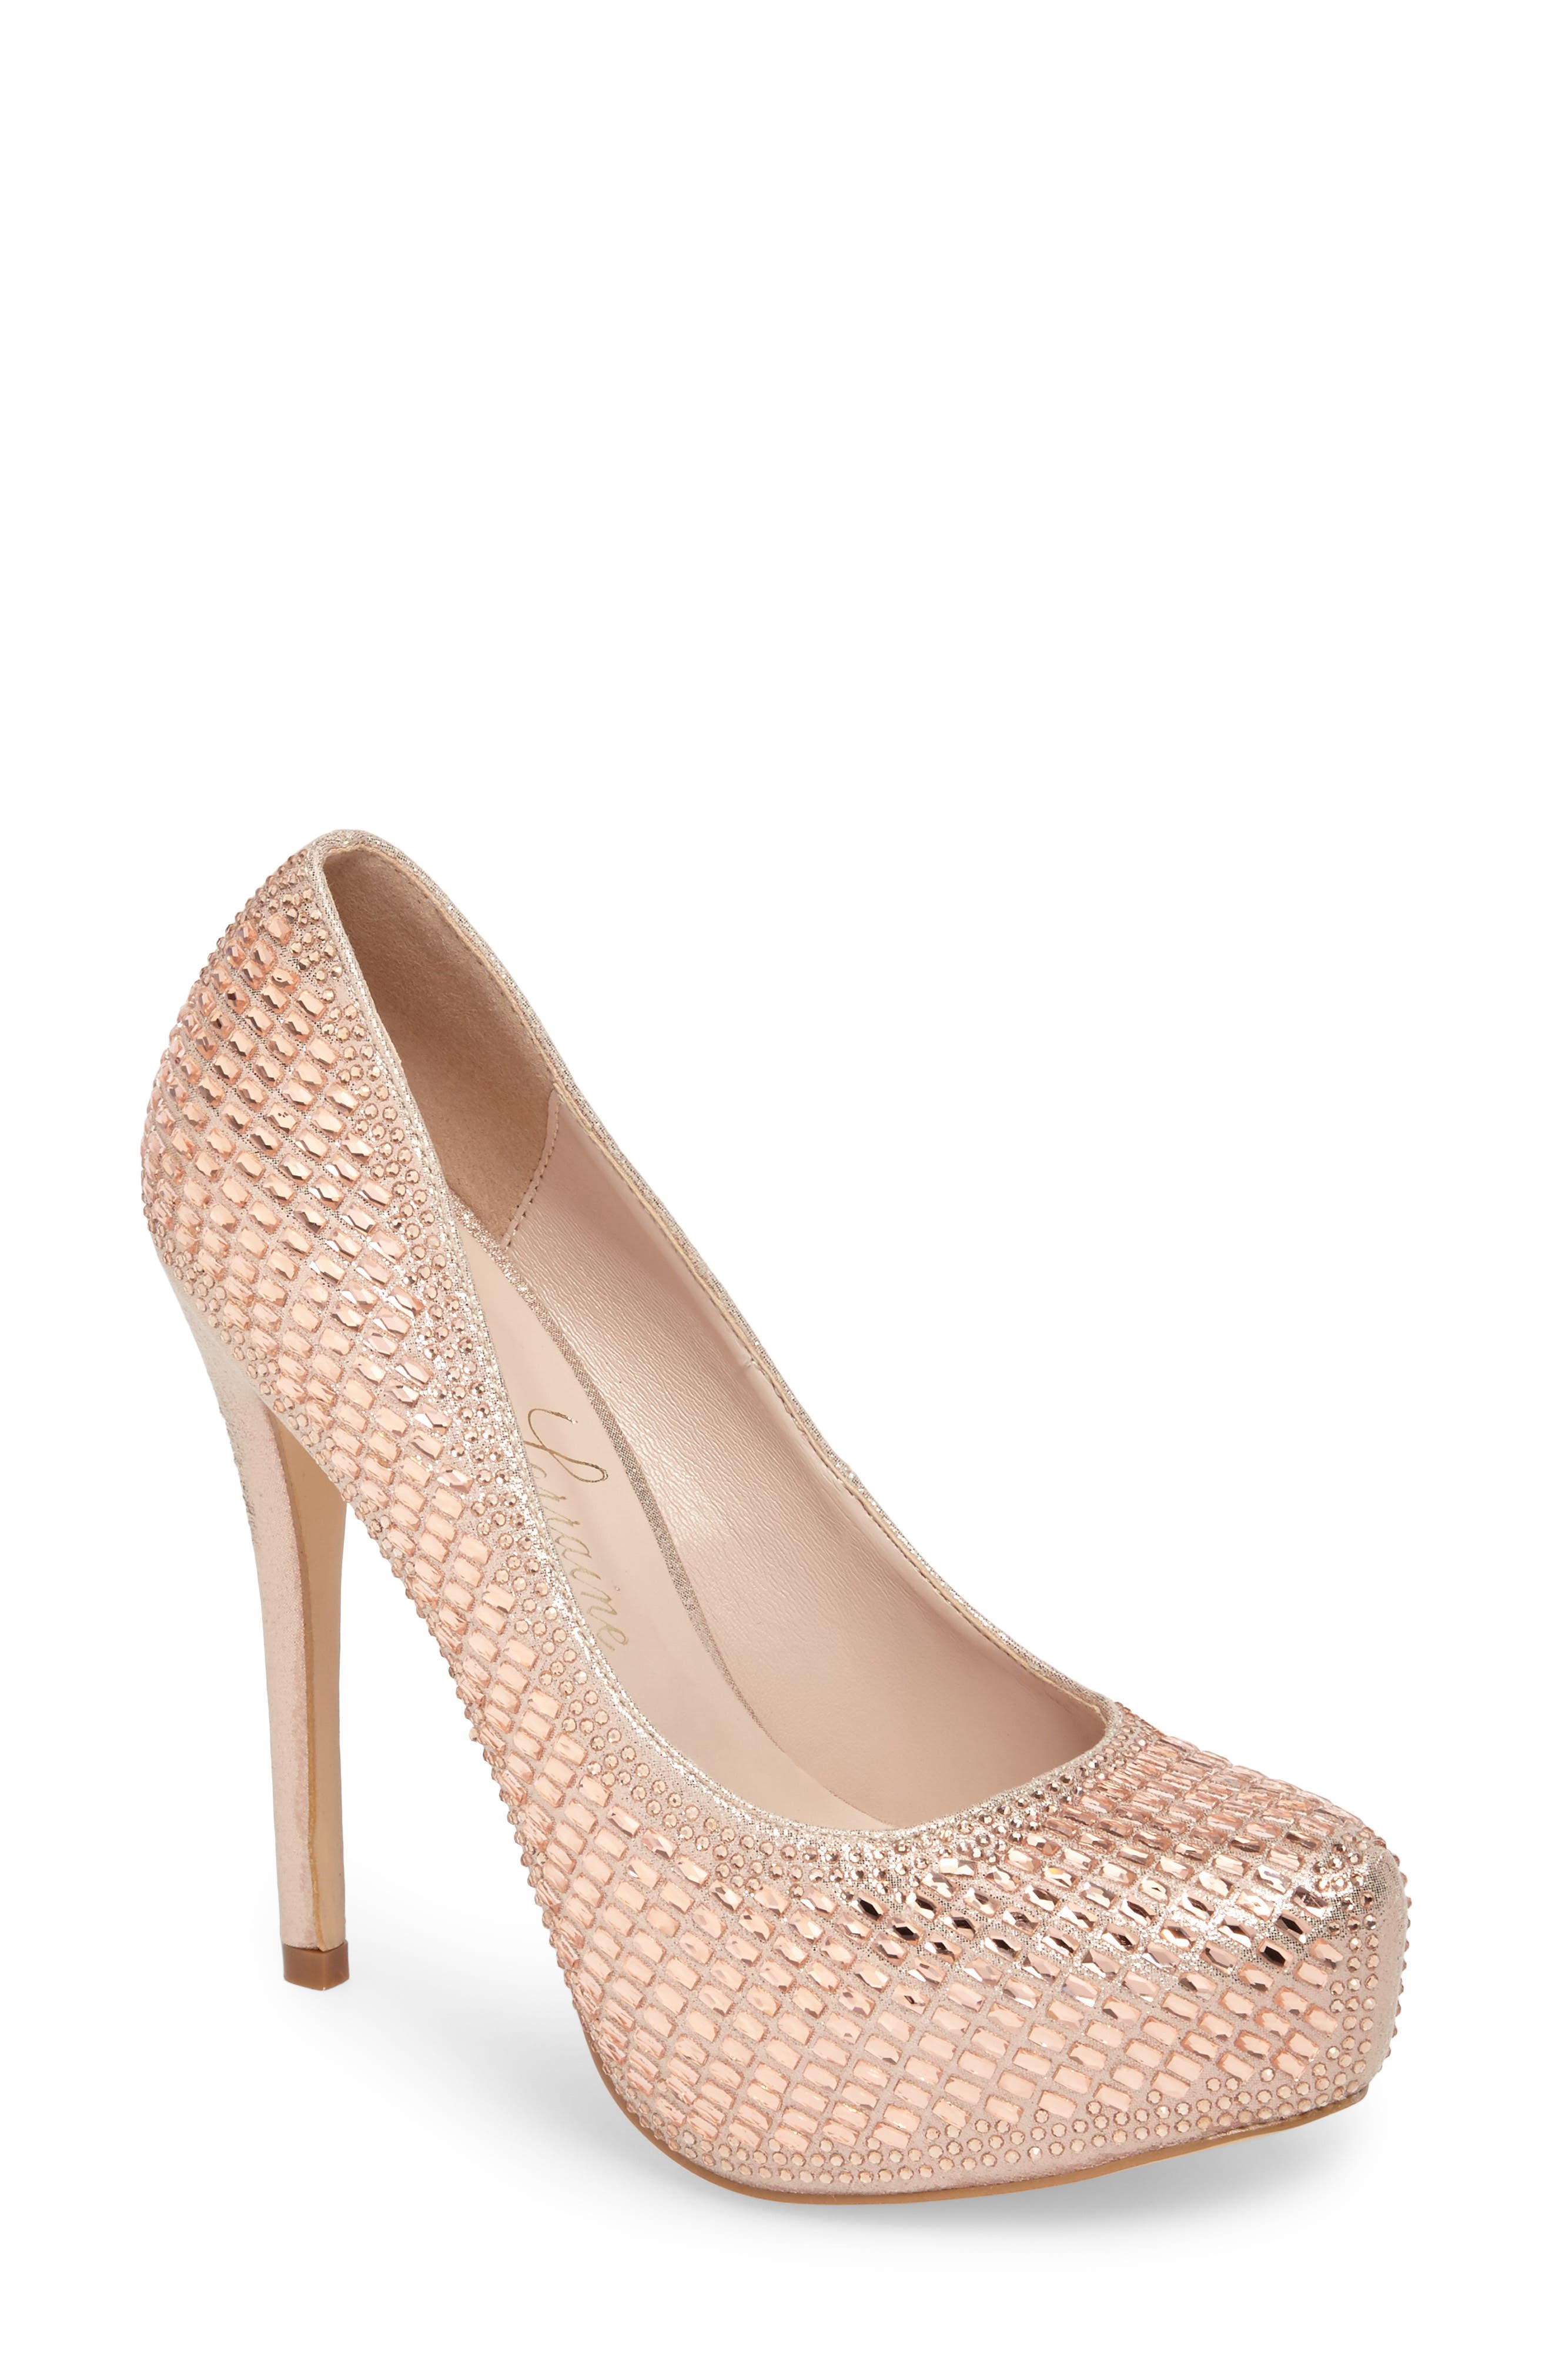 Vanna 5 Platform Pump,                             Main thumbnail 1, color,                             ROSE GOLD